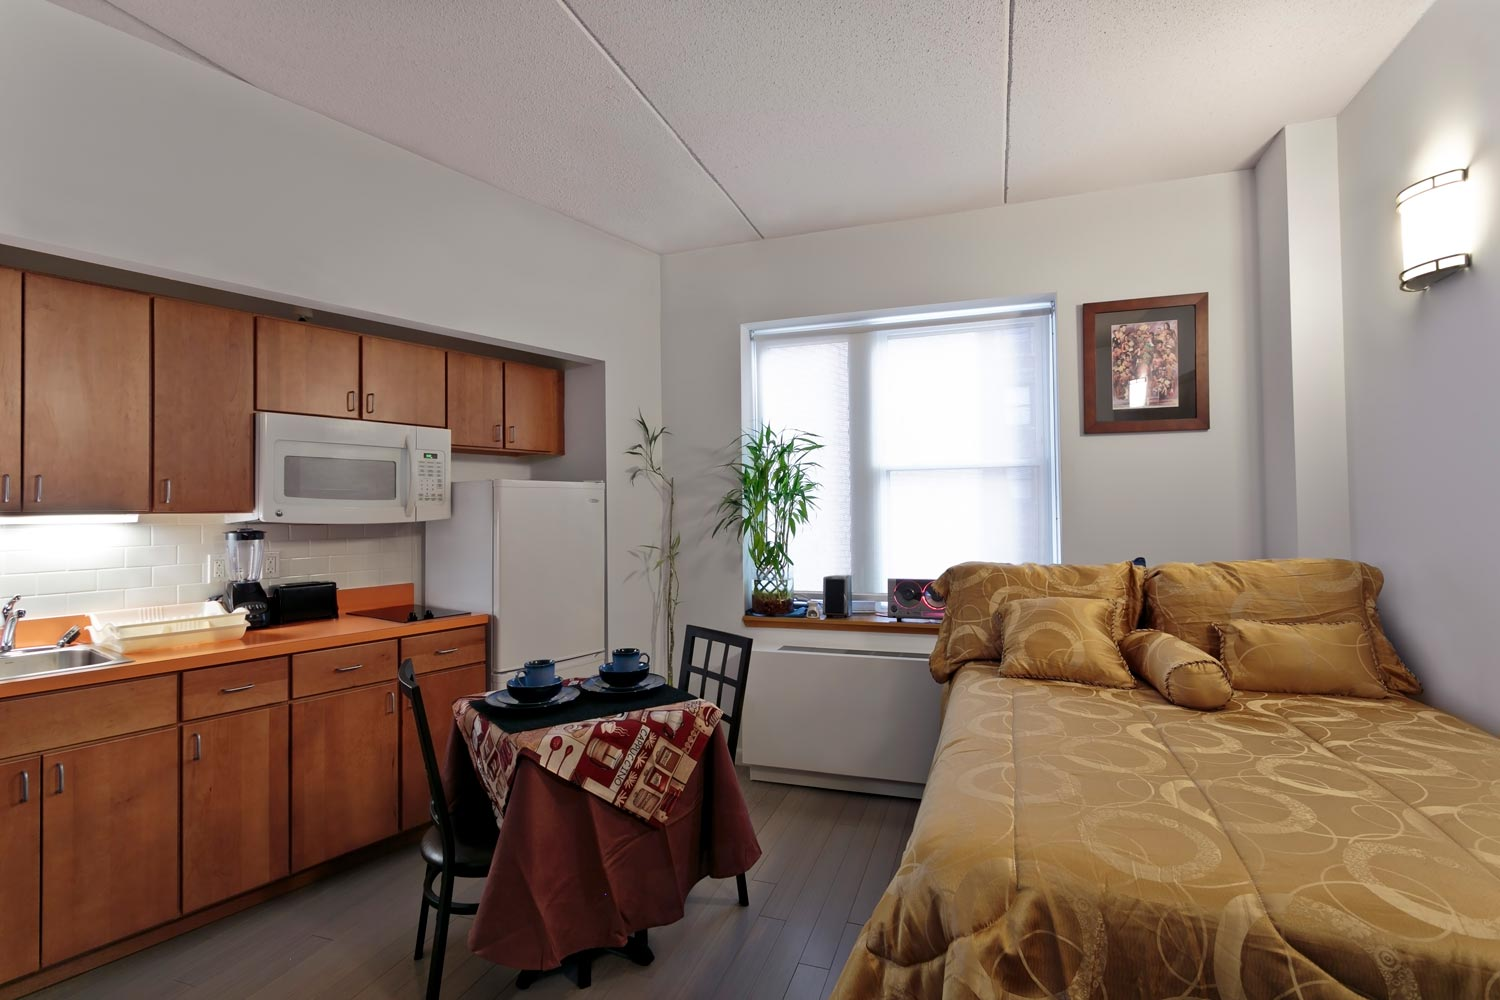 Mosholu Gardens features residential efficiency units with private kitchens and baths.